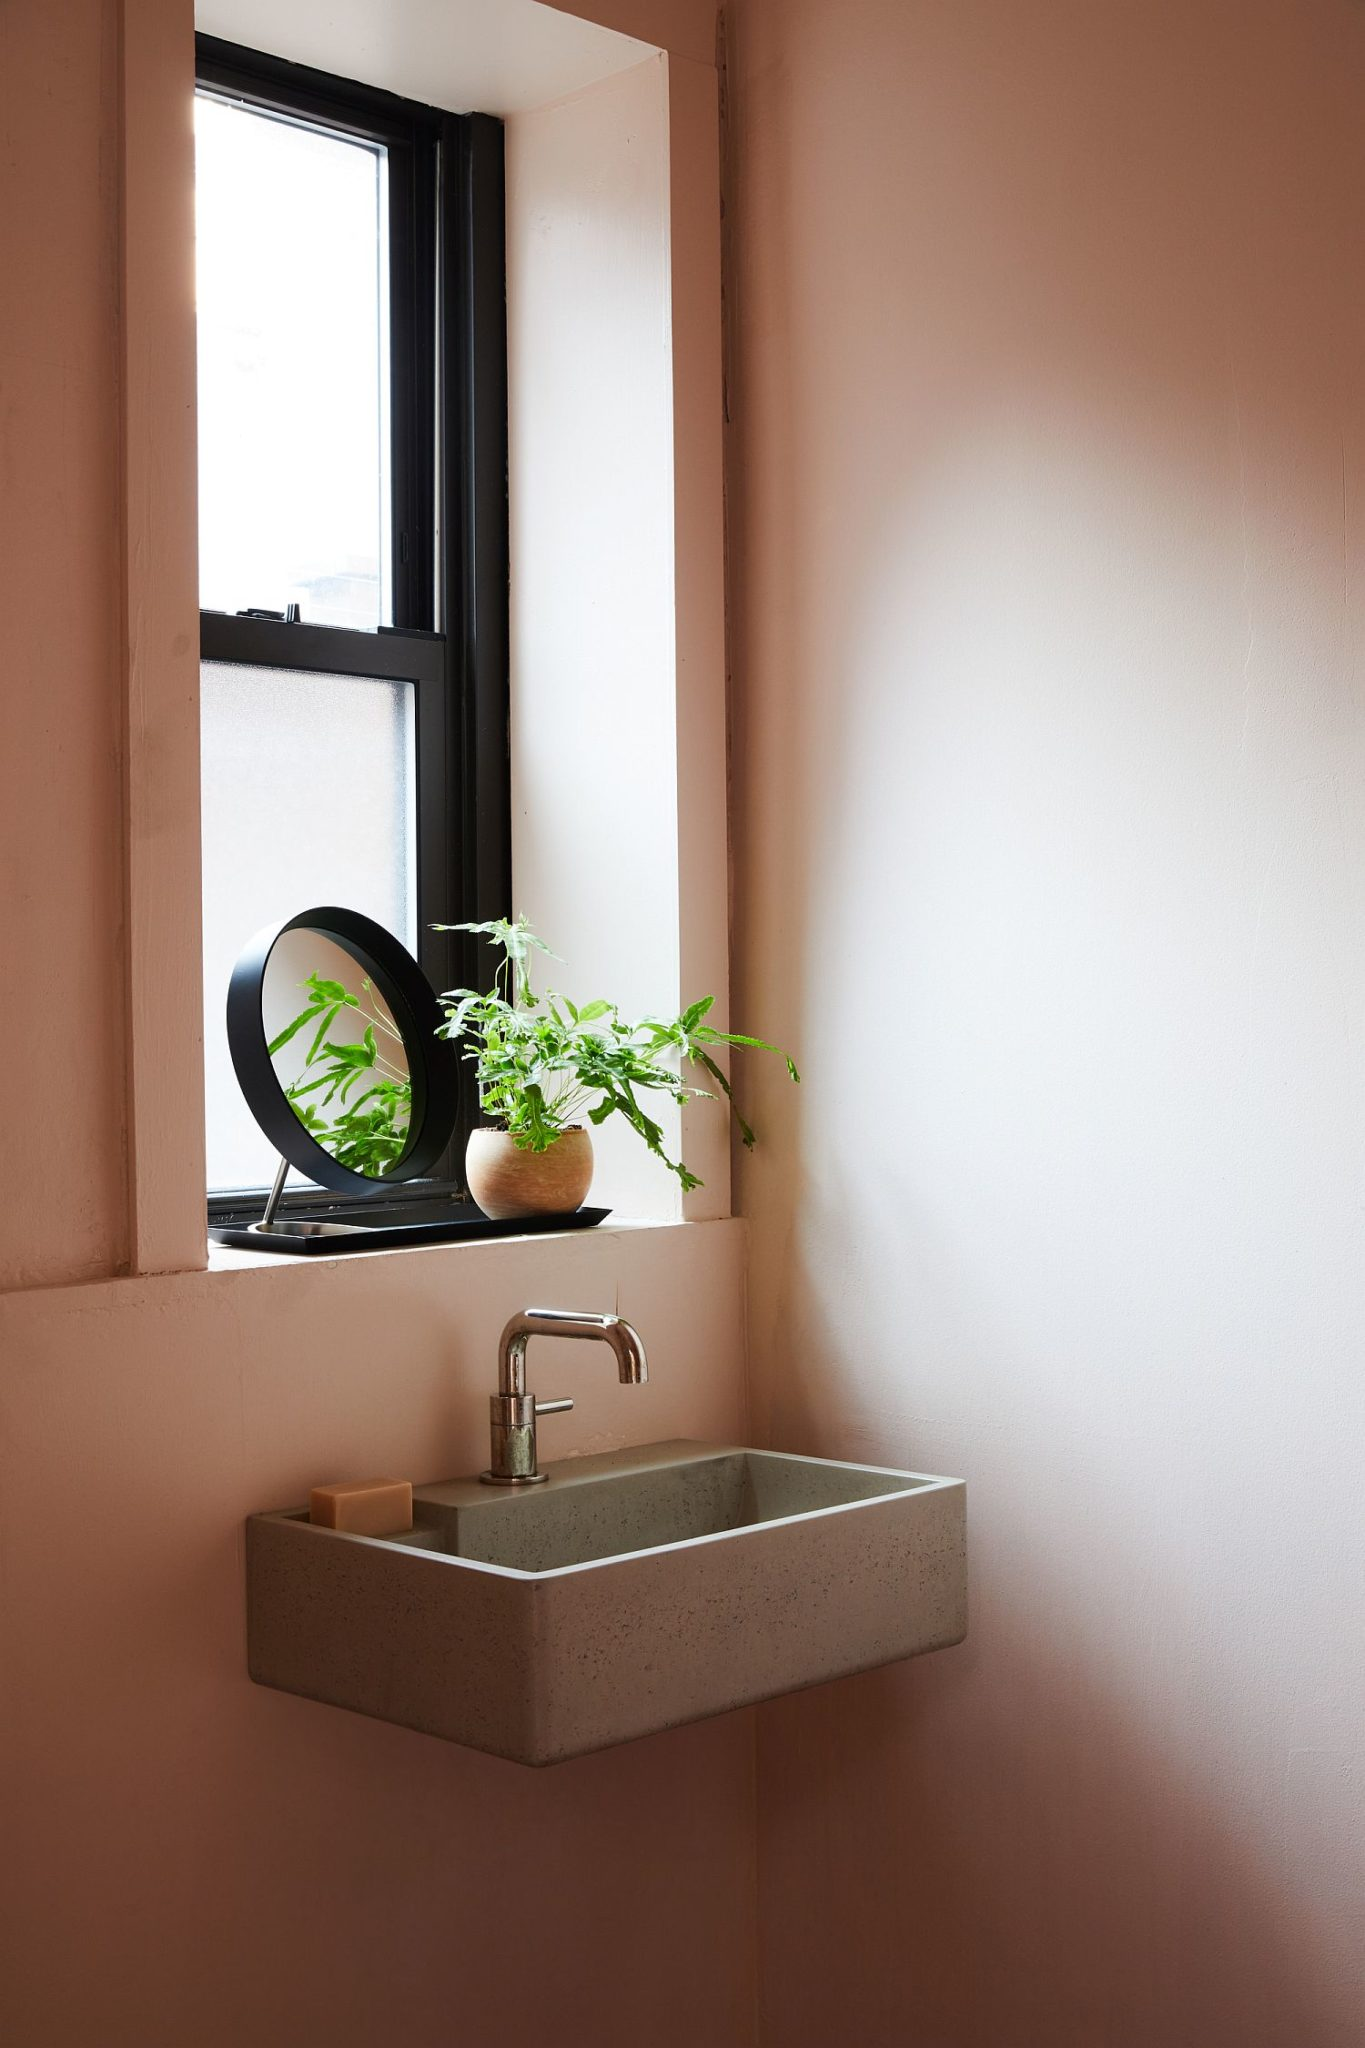 Small sink in the corner is a smart space-saver